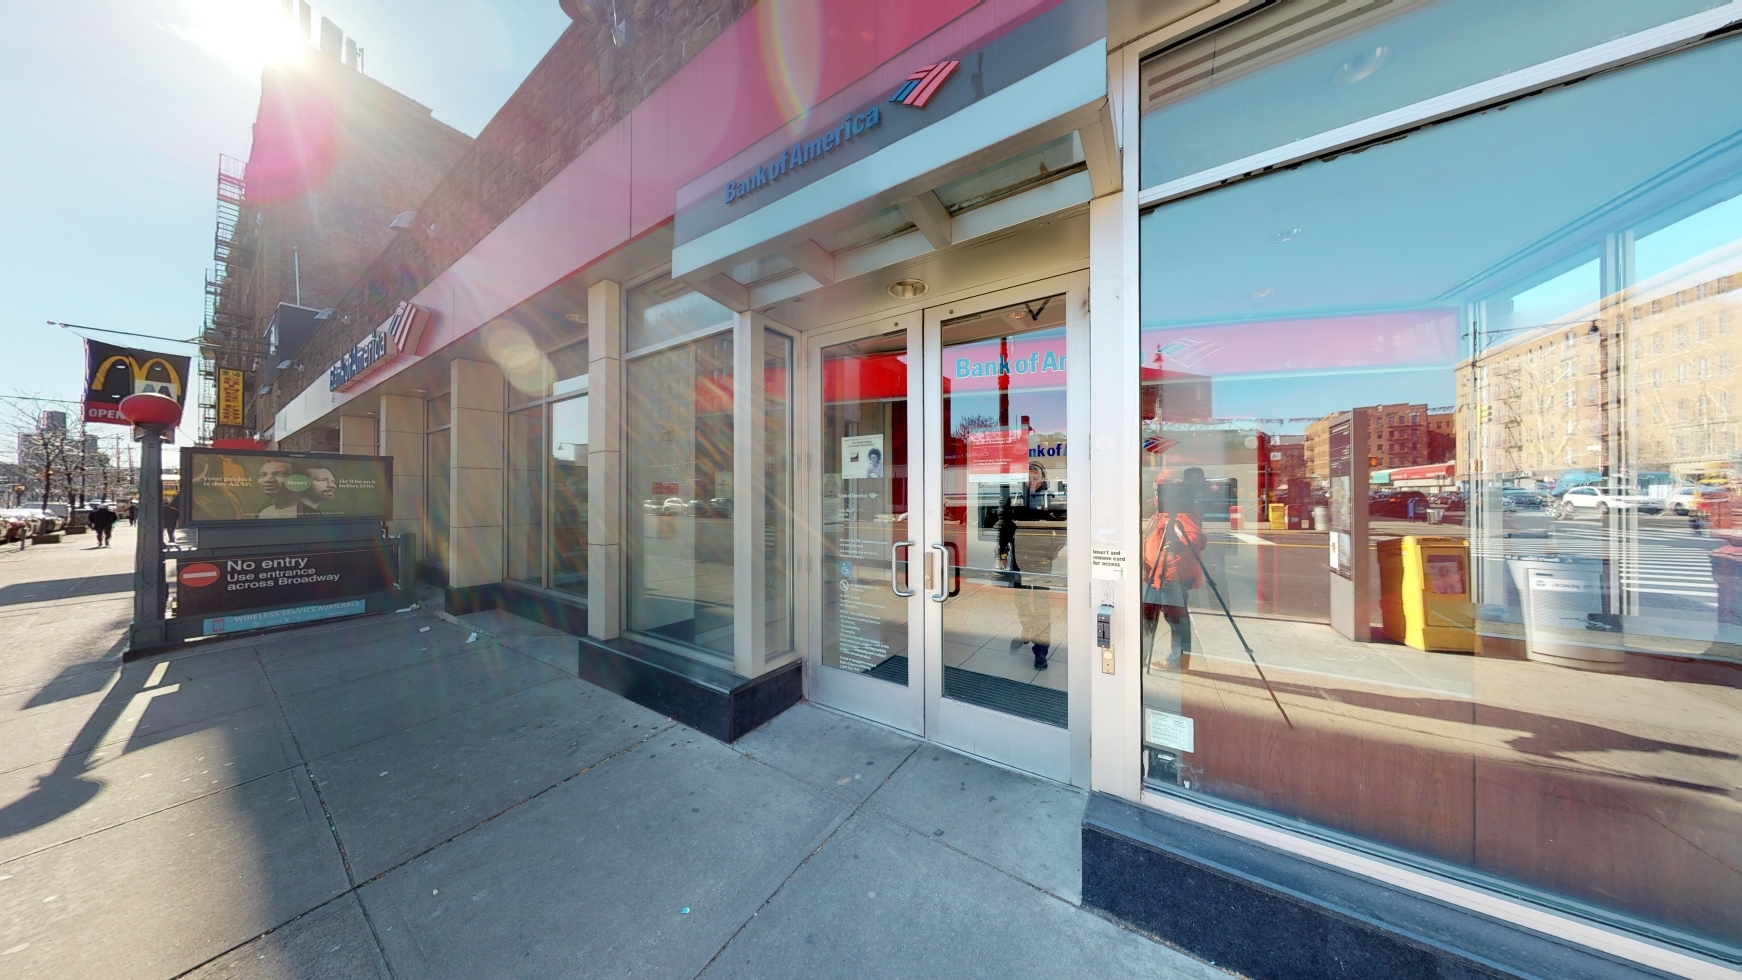 Bank of America financial center with walk-up ATM | 210 Dyckman St, New York, NY 10040